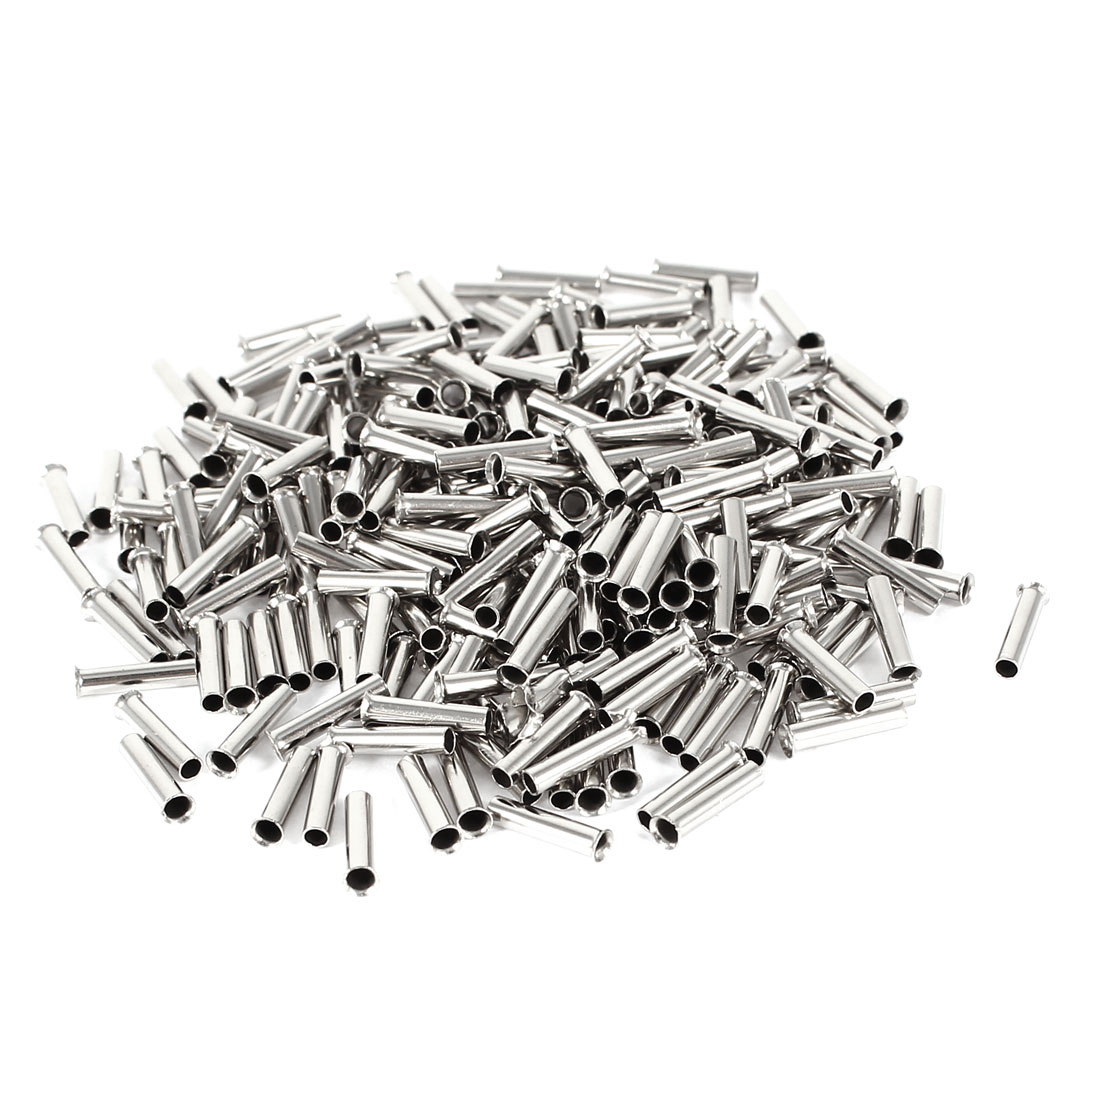 200 Pieces Silver Tone EN1008 Copper A.W.G 18 8mmx2mm Non-Insulated Wire Ferrule